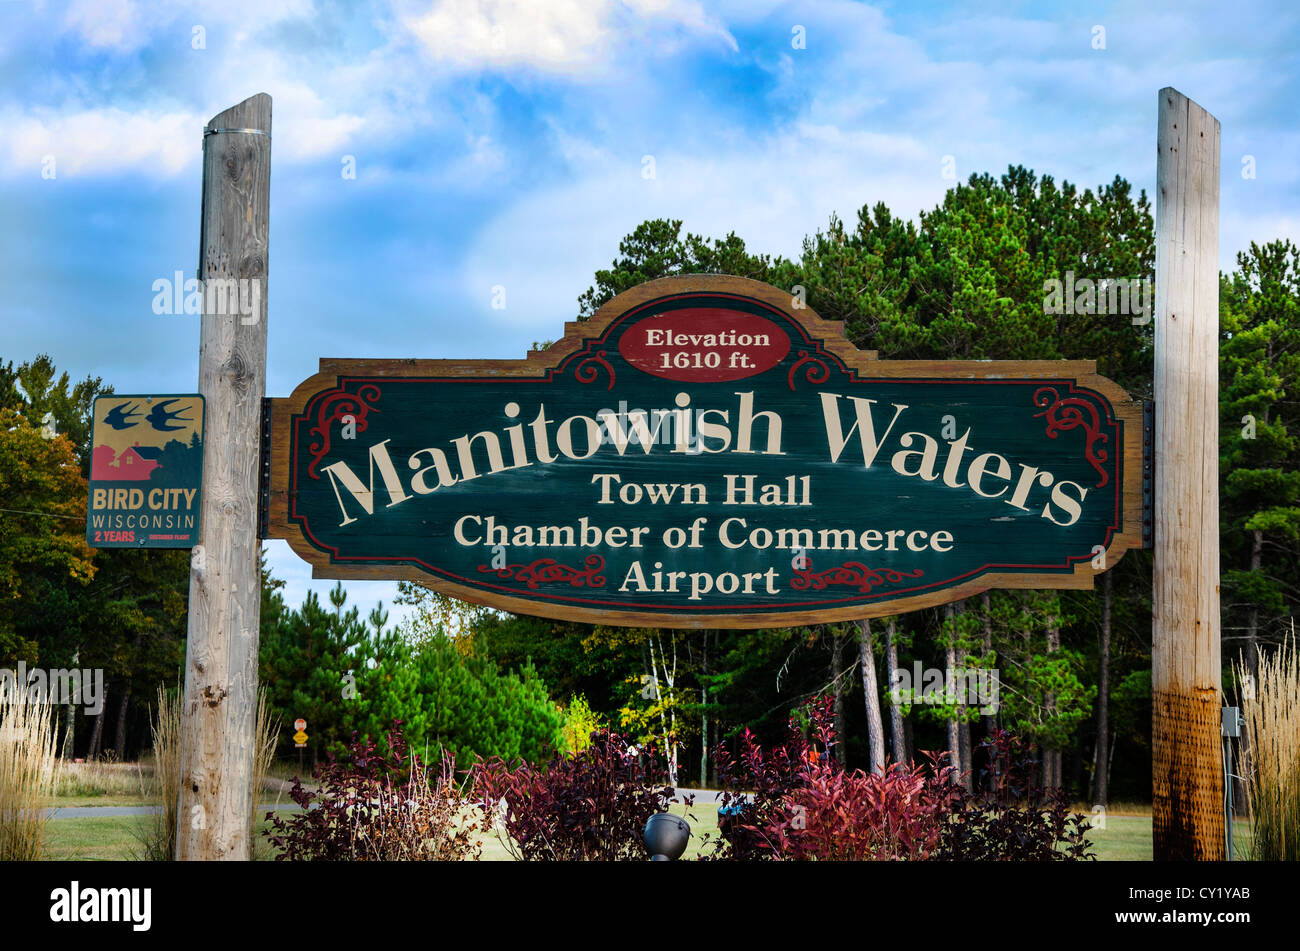 Welcome Sign for Manitowish Waters in the Northwoods of Wisconsin - Stock Image